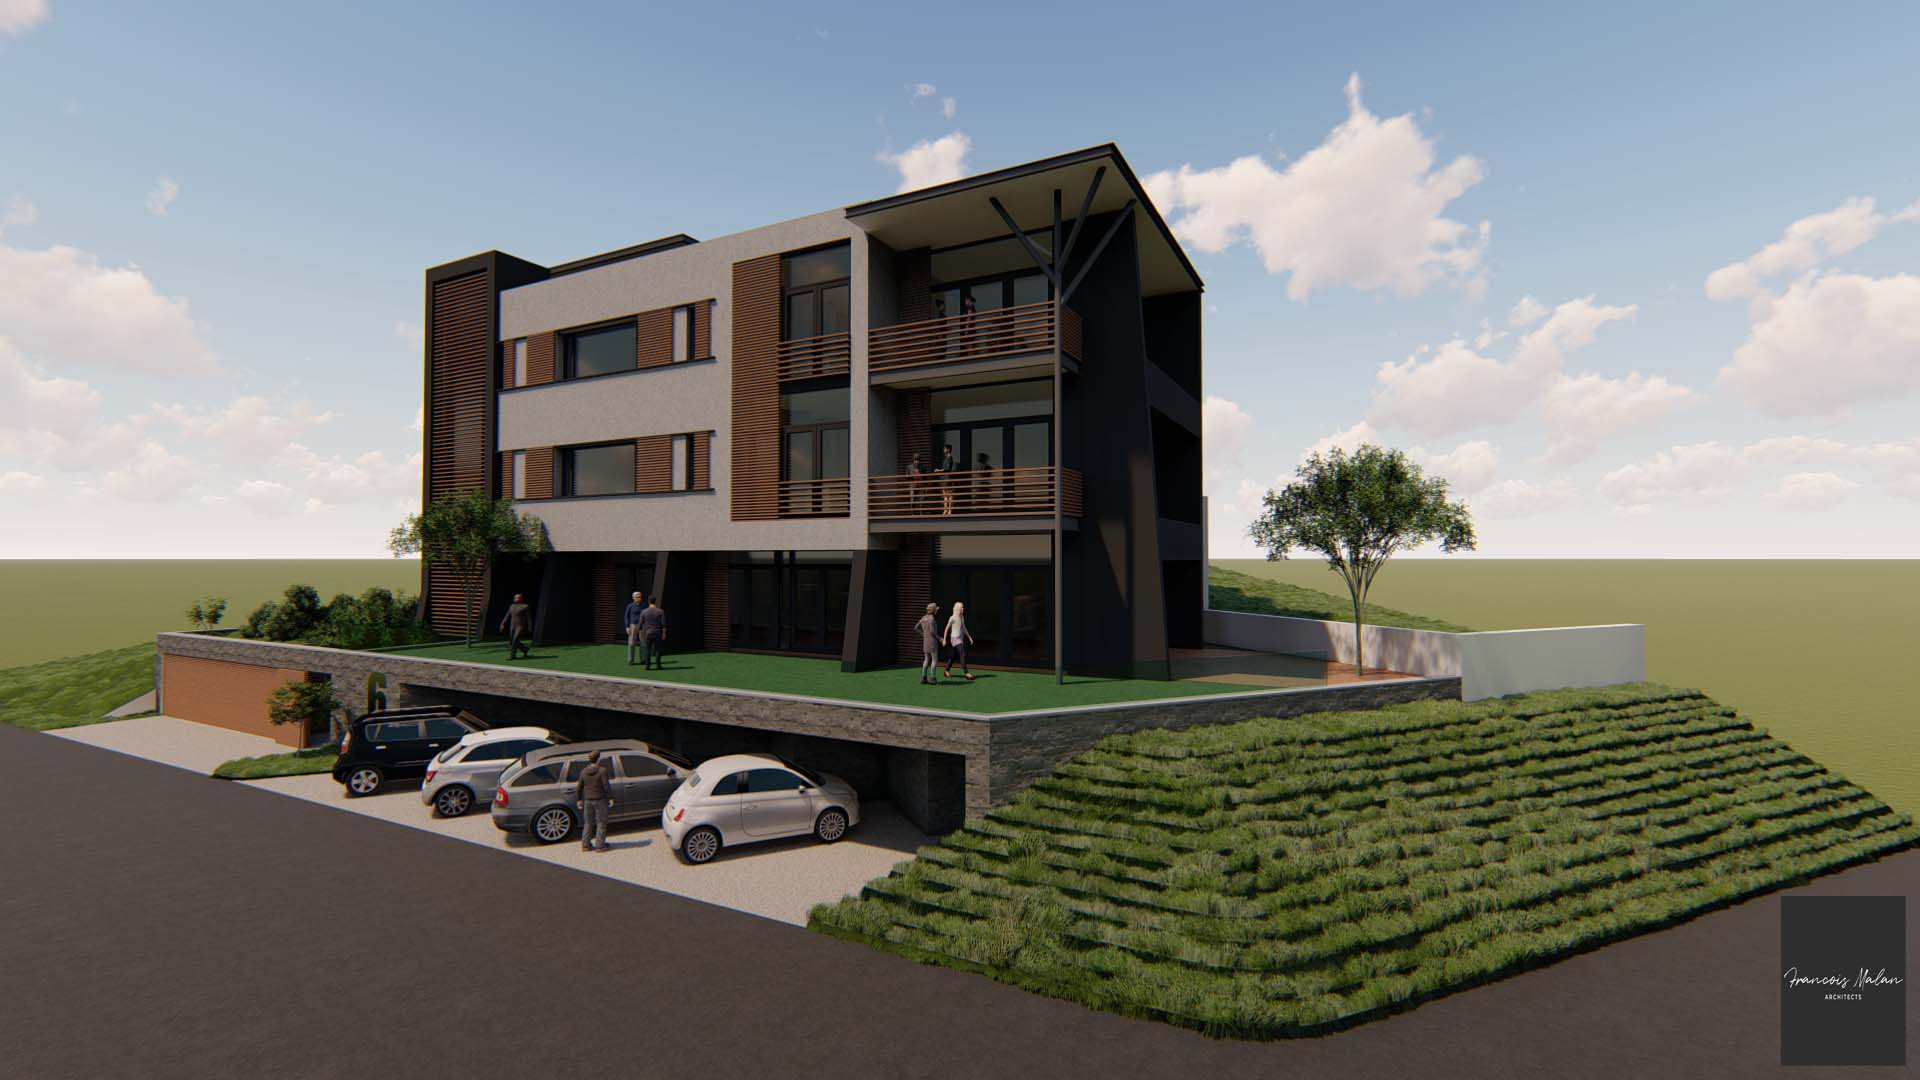 East view of a rendering to showcase the end-result of a house renovation in Gordon's Bay by Francois Malan Architects